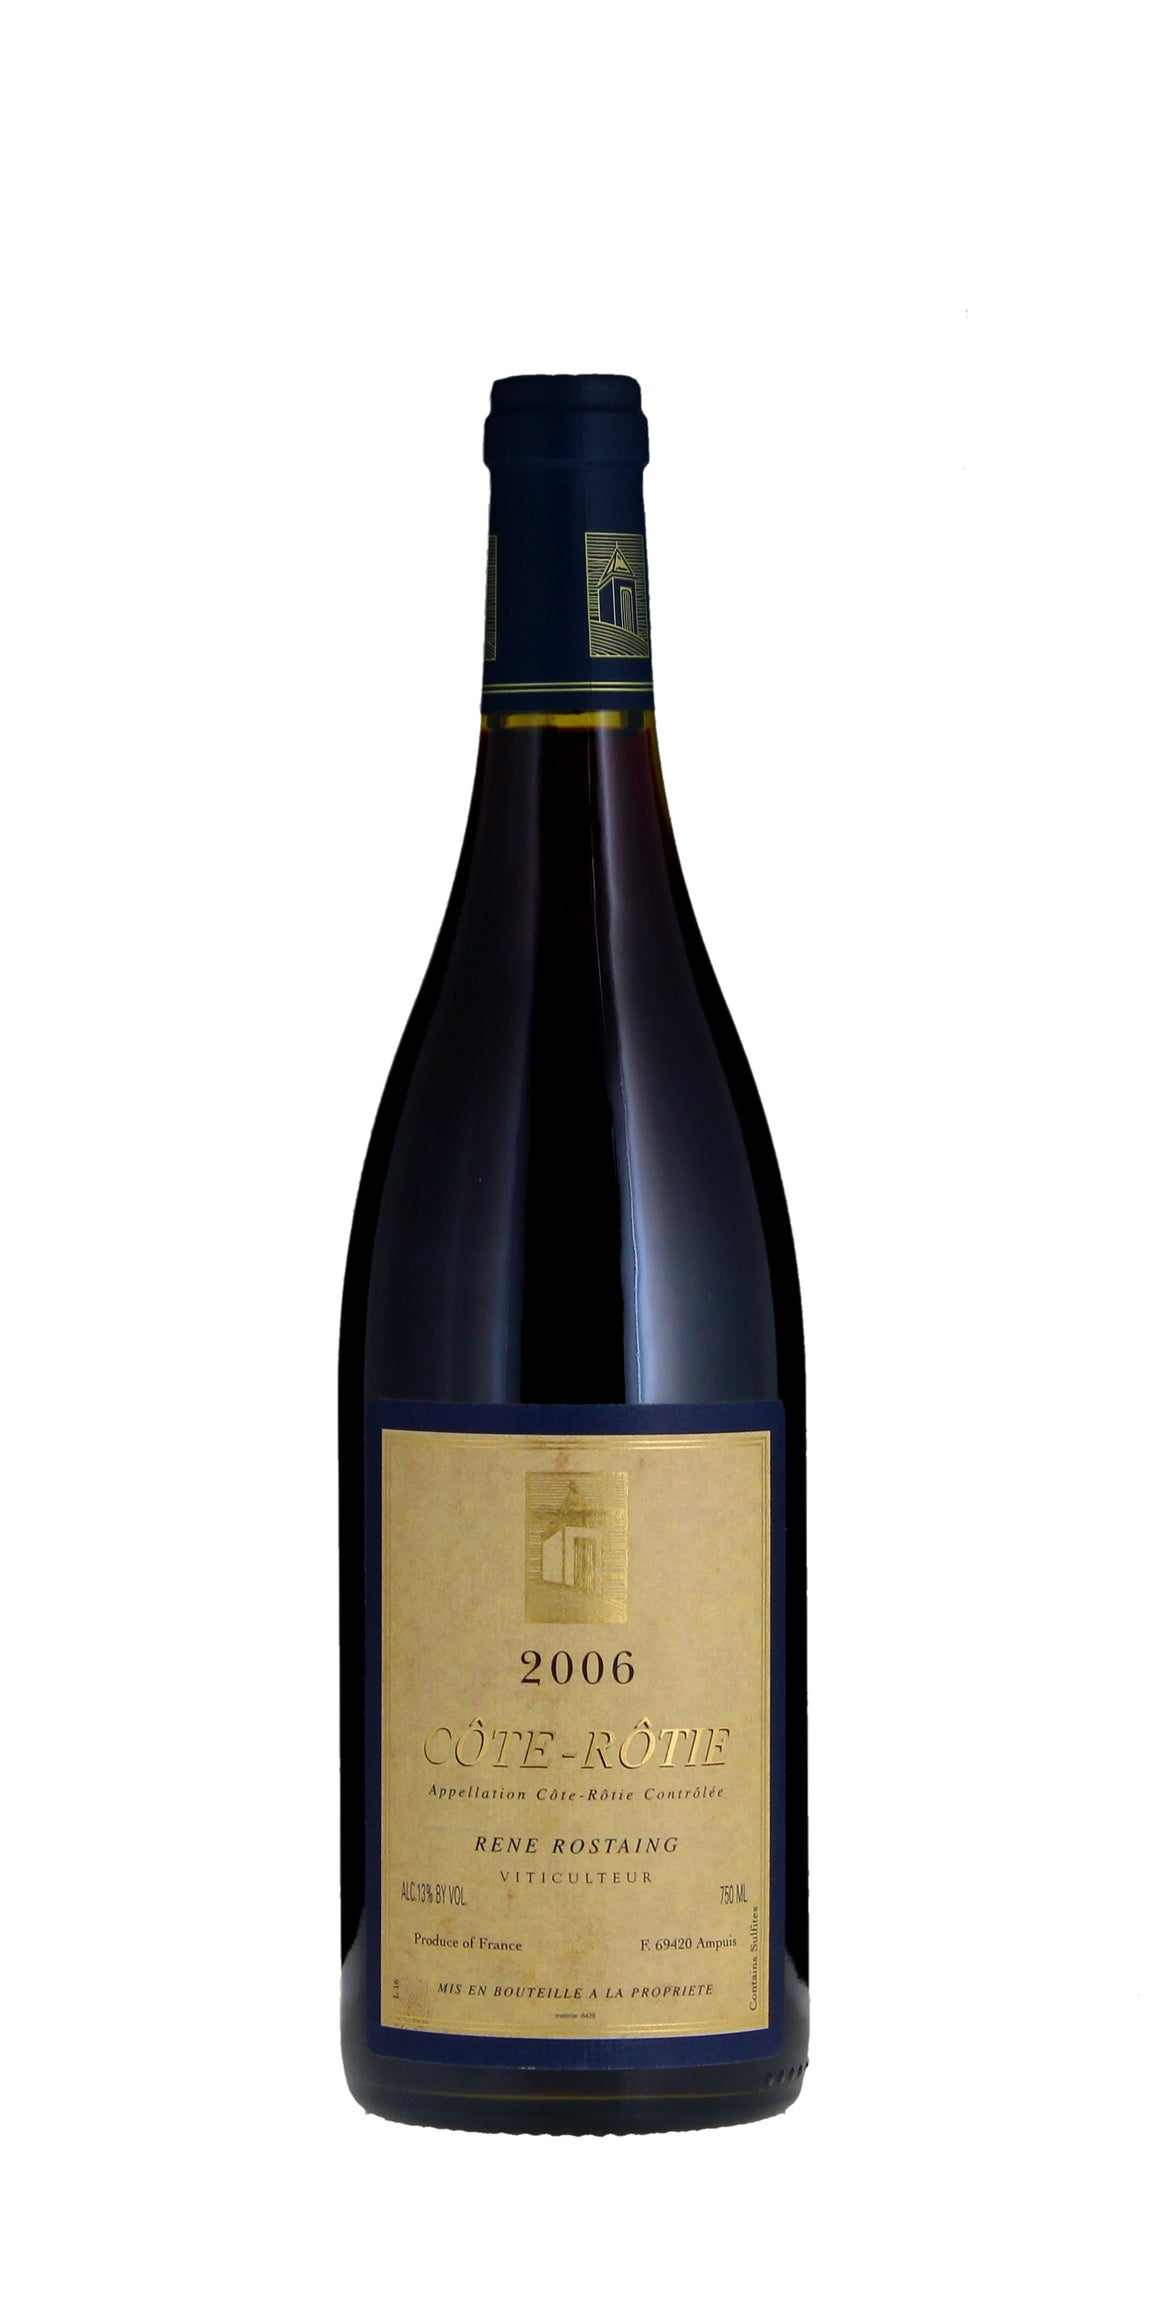 Rene Rostaing Cote Rotie 2006